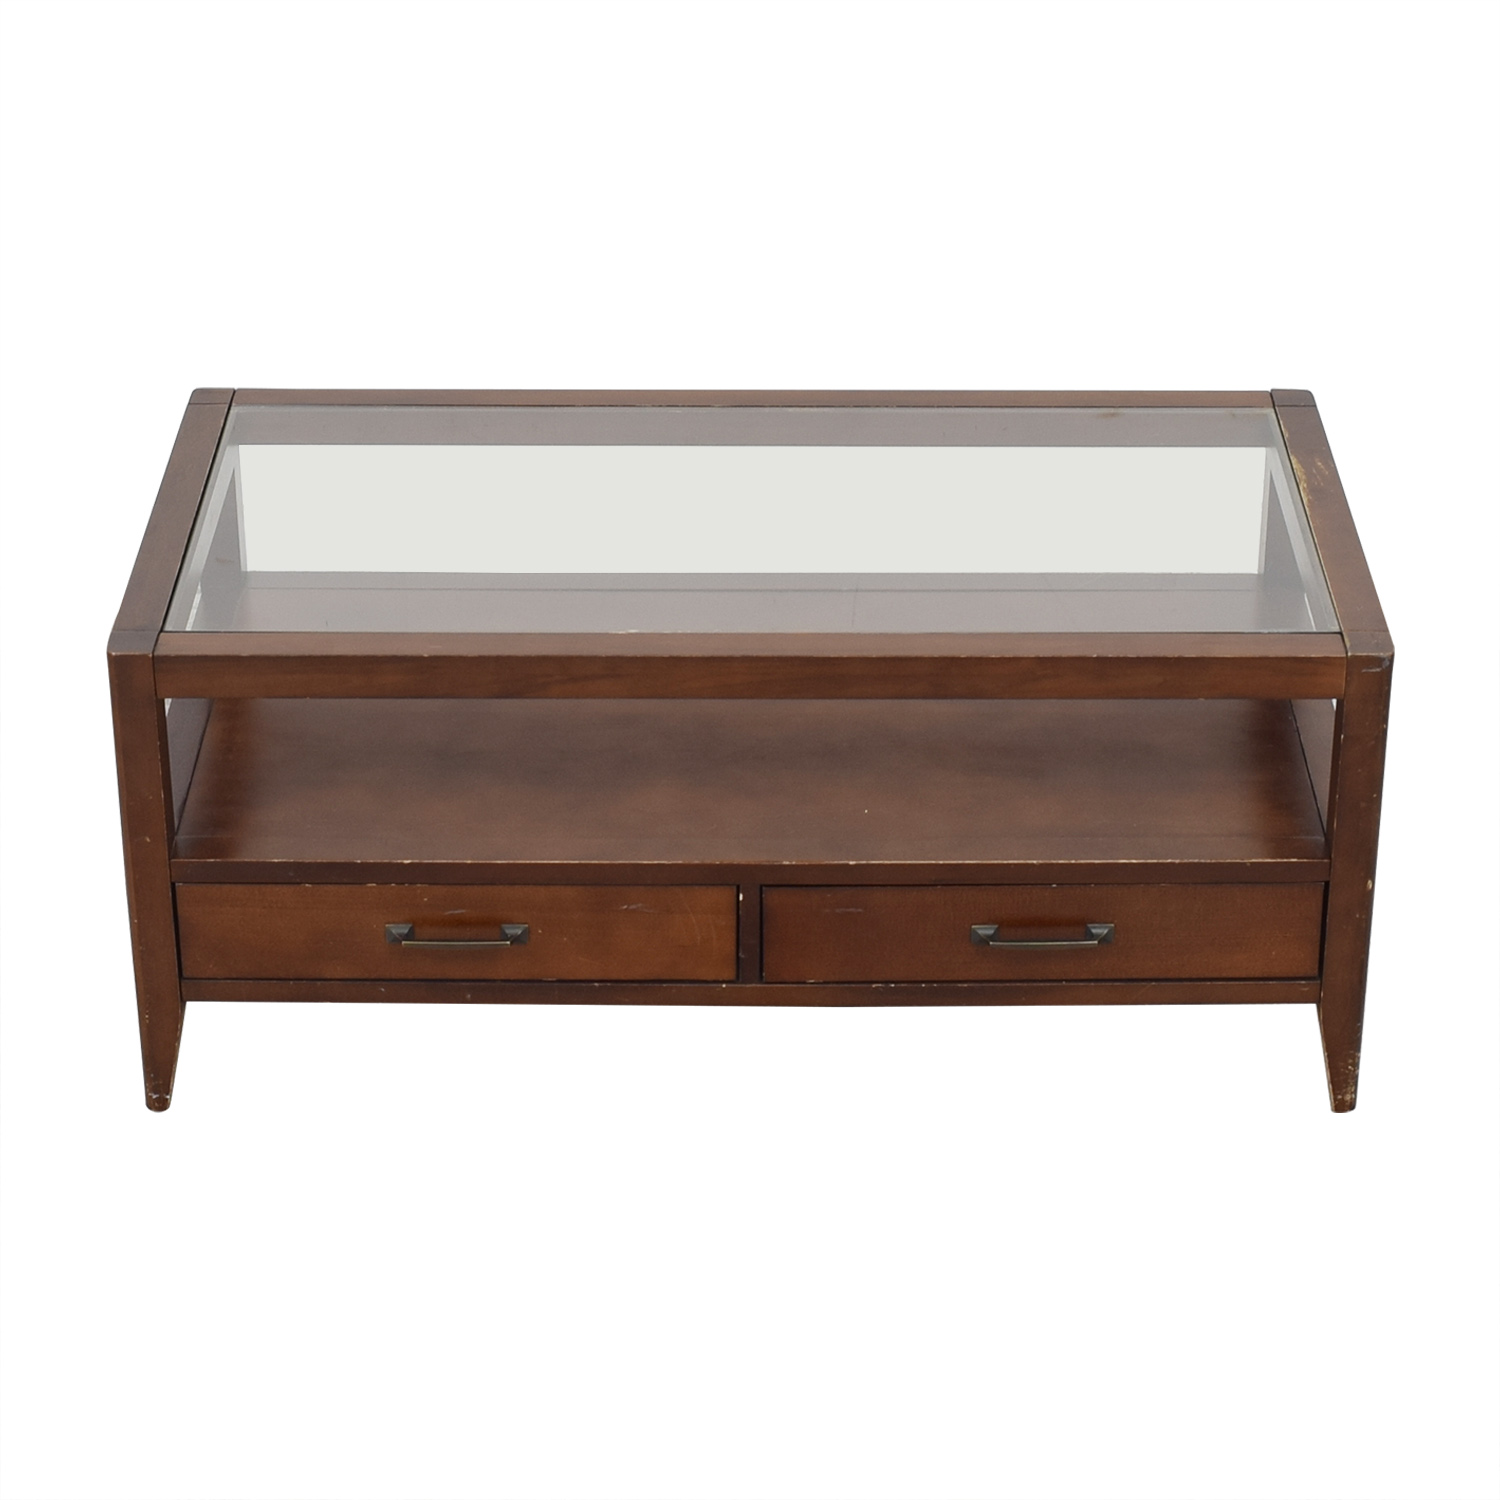 Crate & Barrel Crate & Barrel Two Drawer Coffee Table dimensions